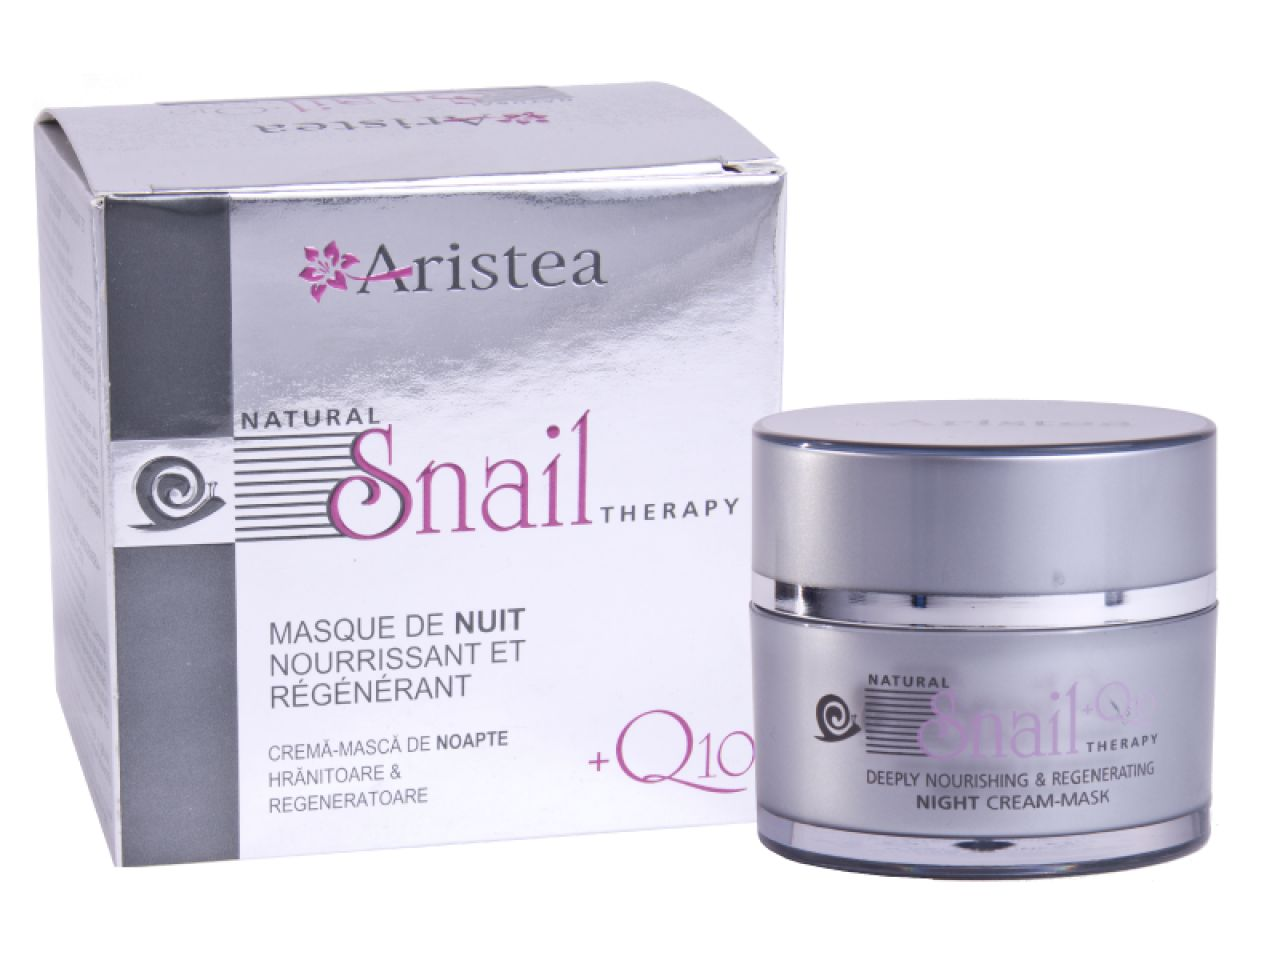 Nourishing & regenerating night cream-mask with snail extract and Q10